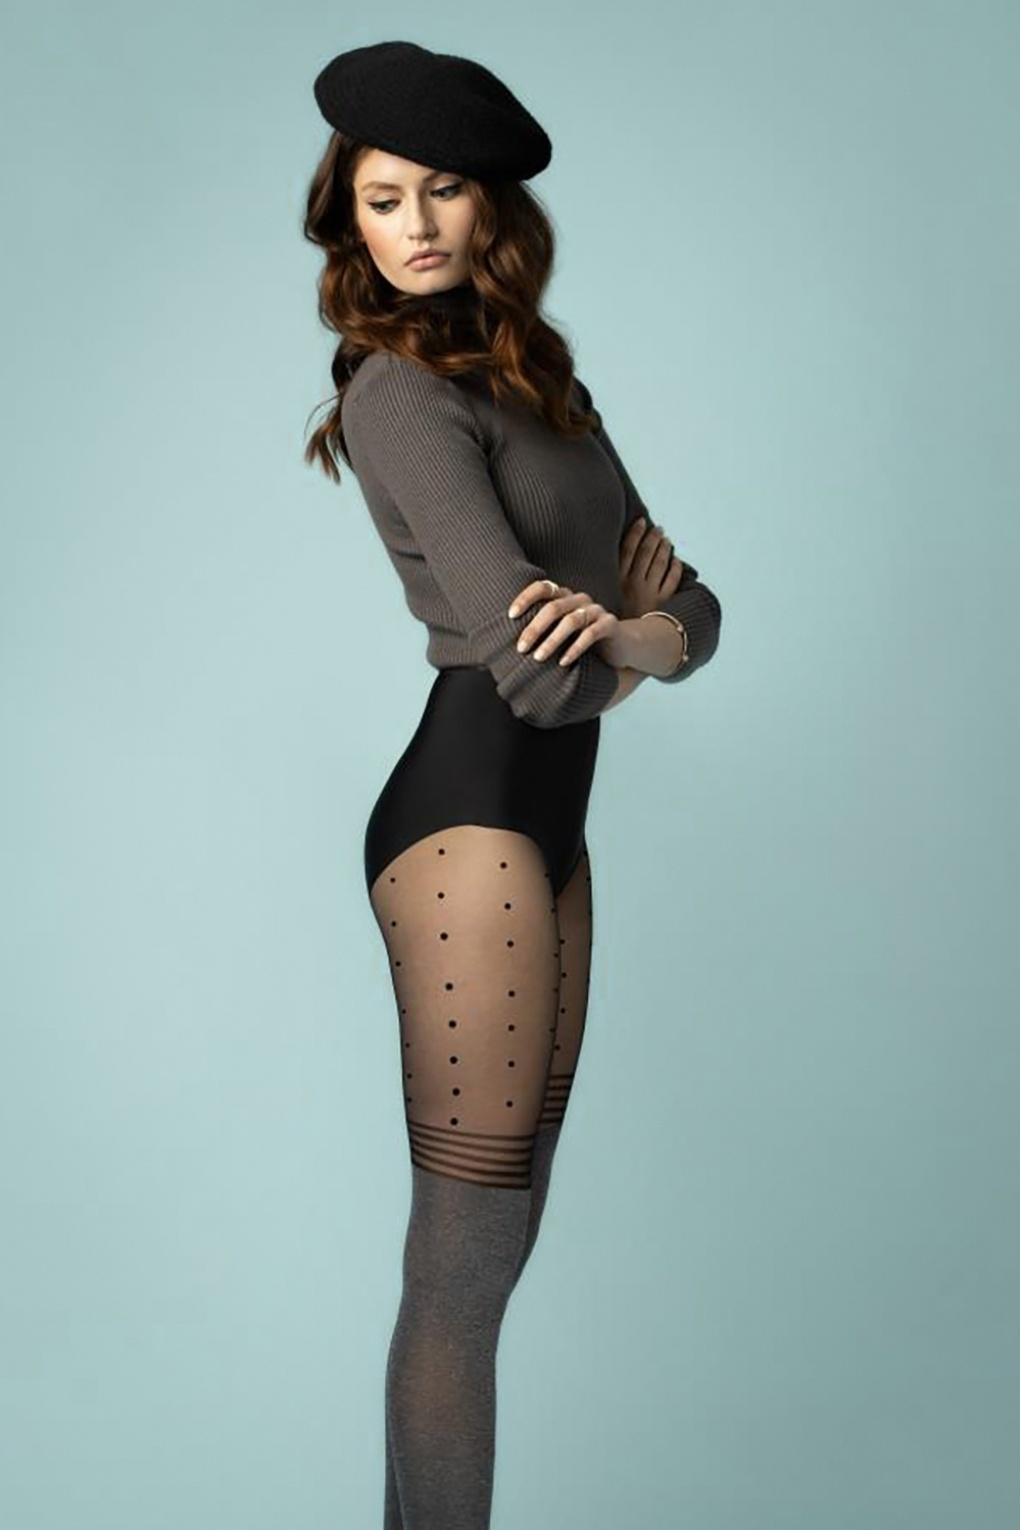 1960s Tights, Stockings, Panty Hose, Knee High Socks Cherish Me Tights Black and Grey £8.85 AT vintagedancer.com